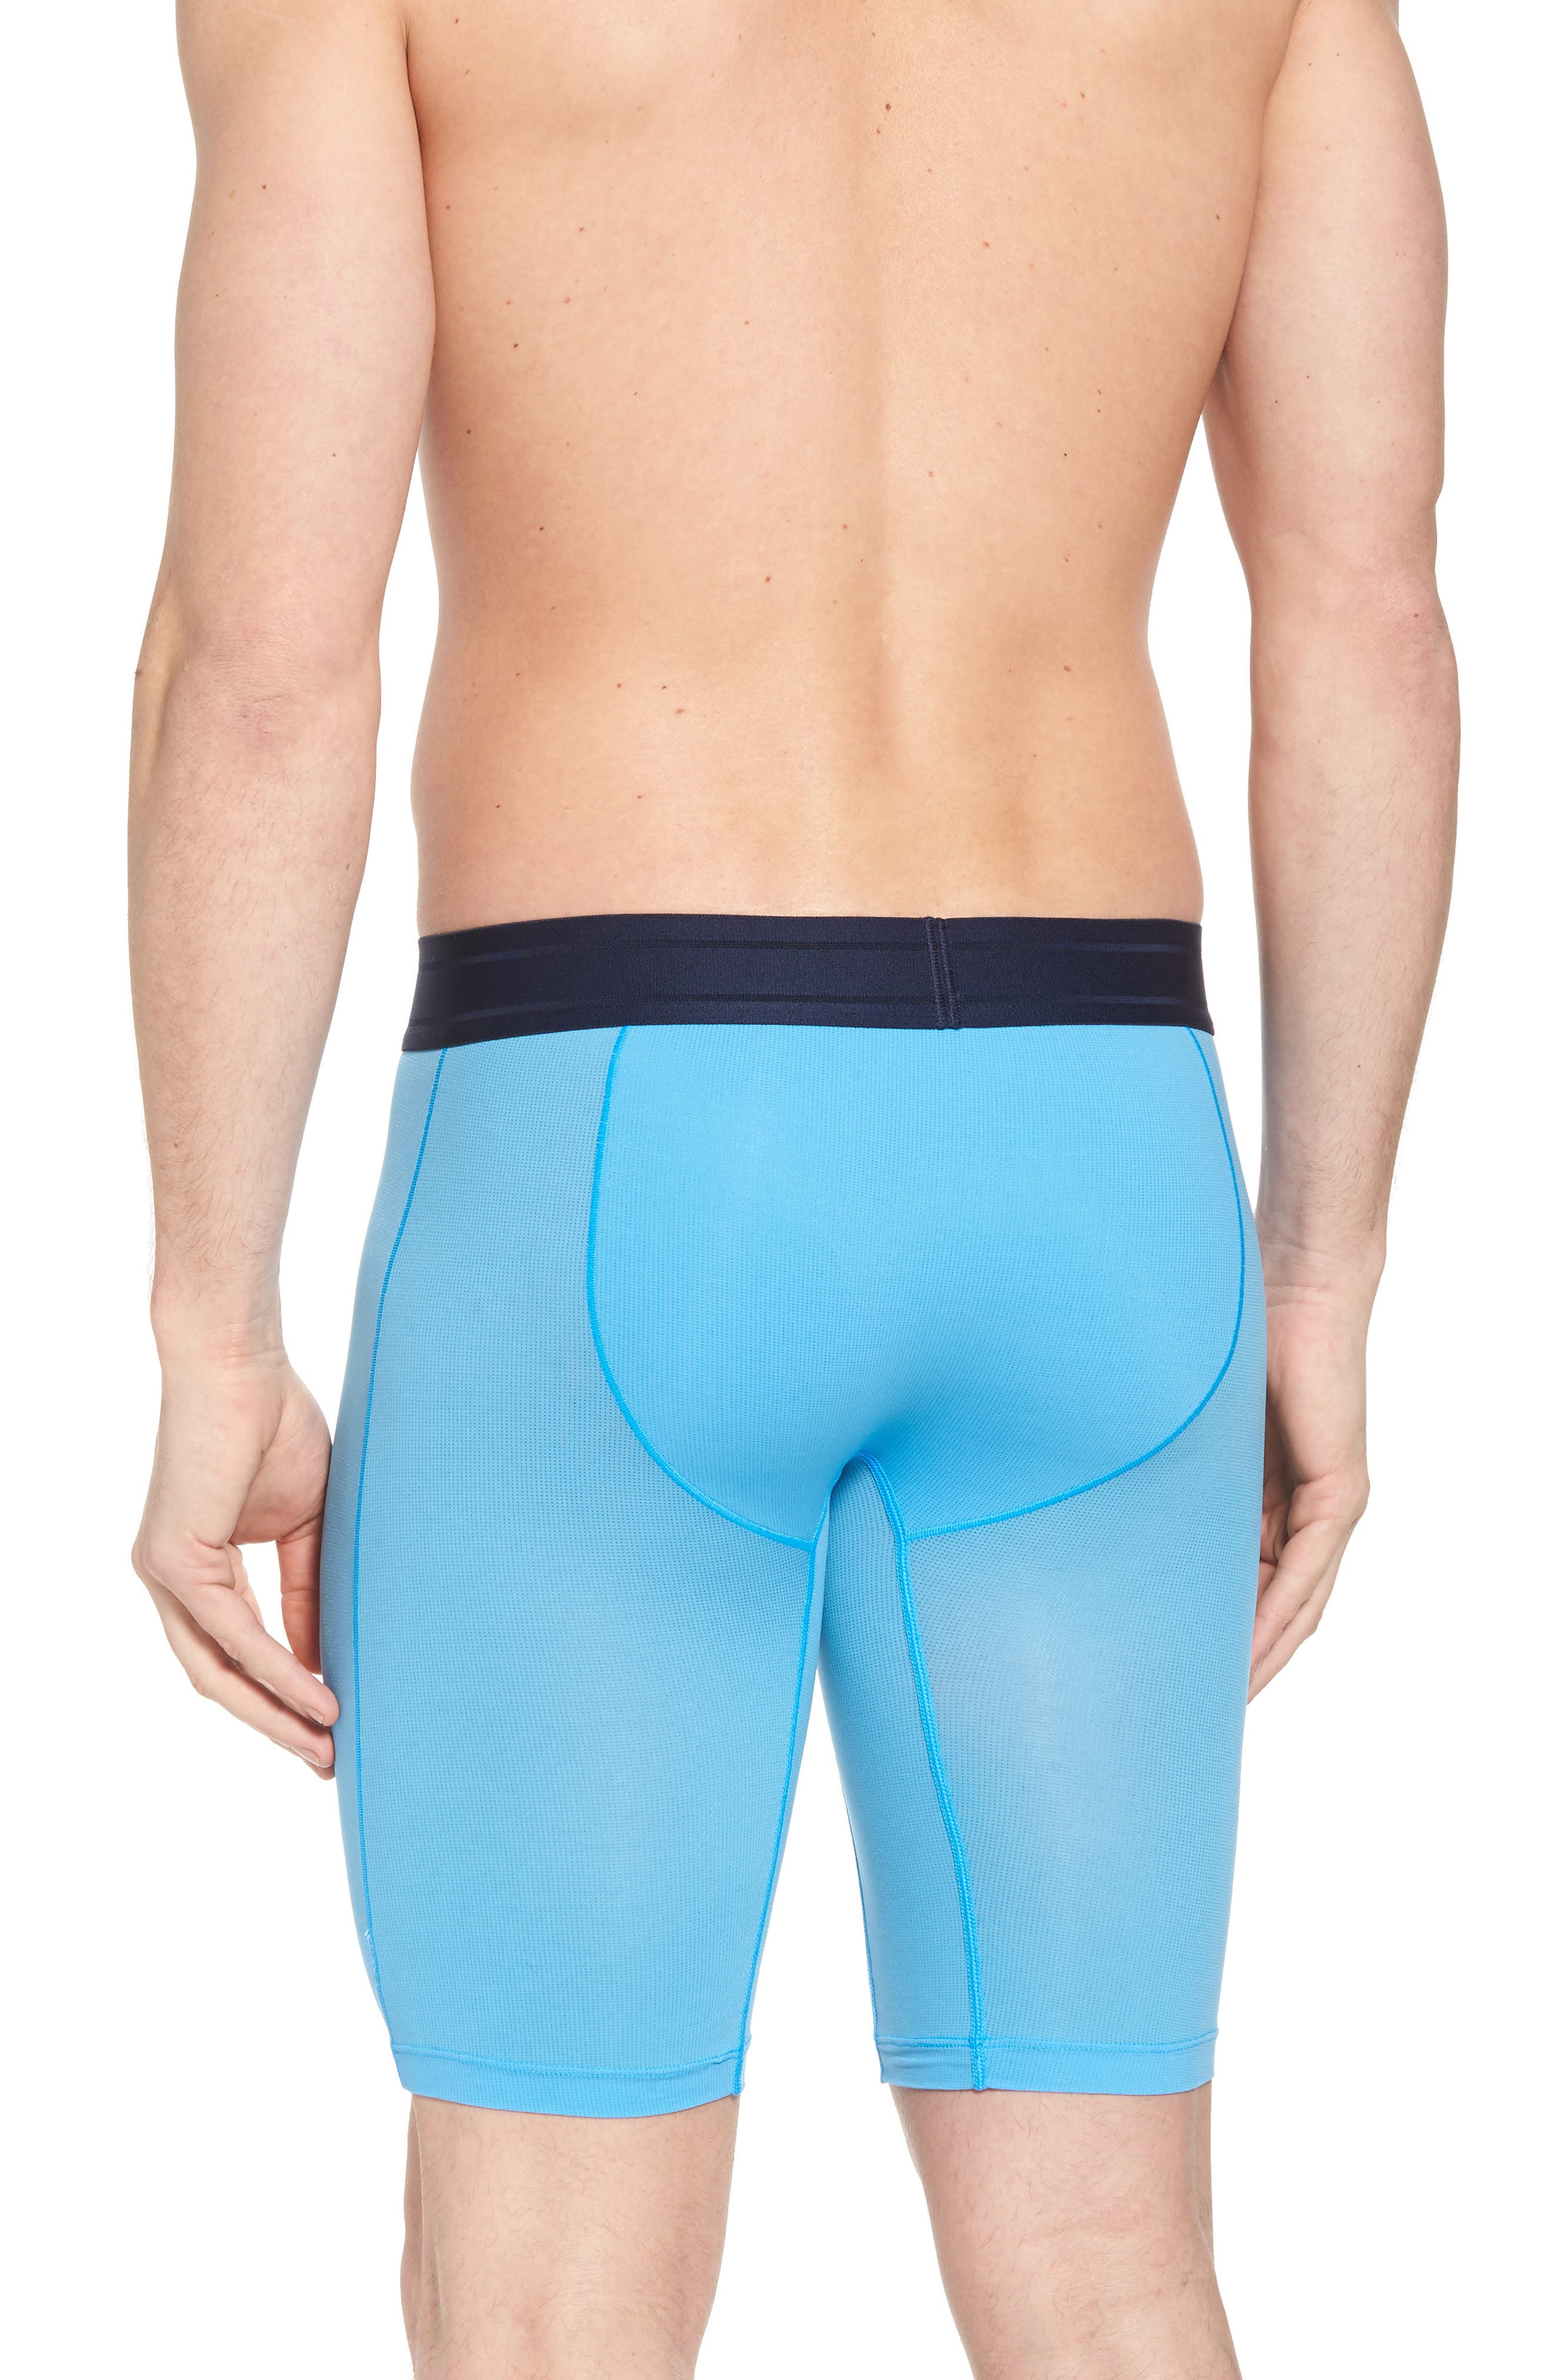 Air Boxer Briefs,                             Alternate thumbnail 2, color,                             Azure